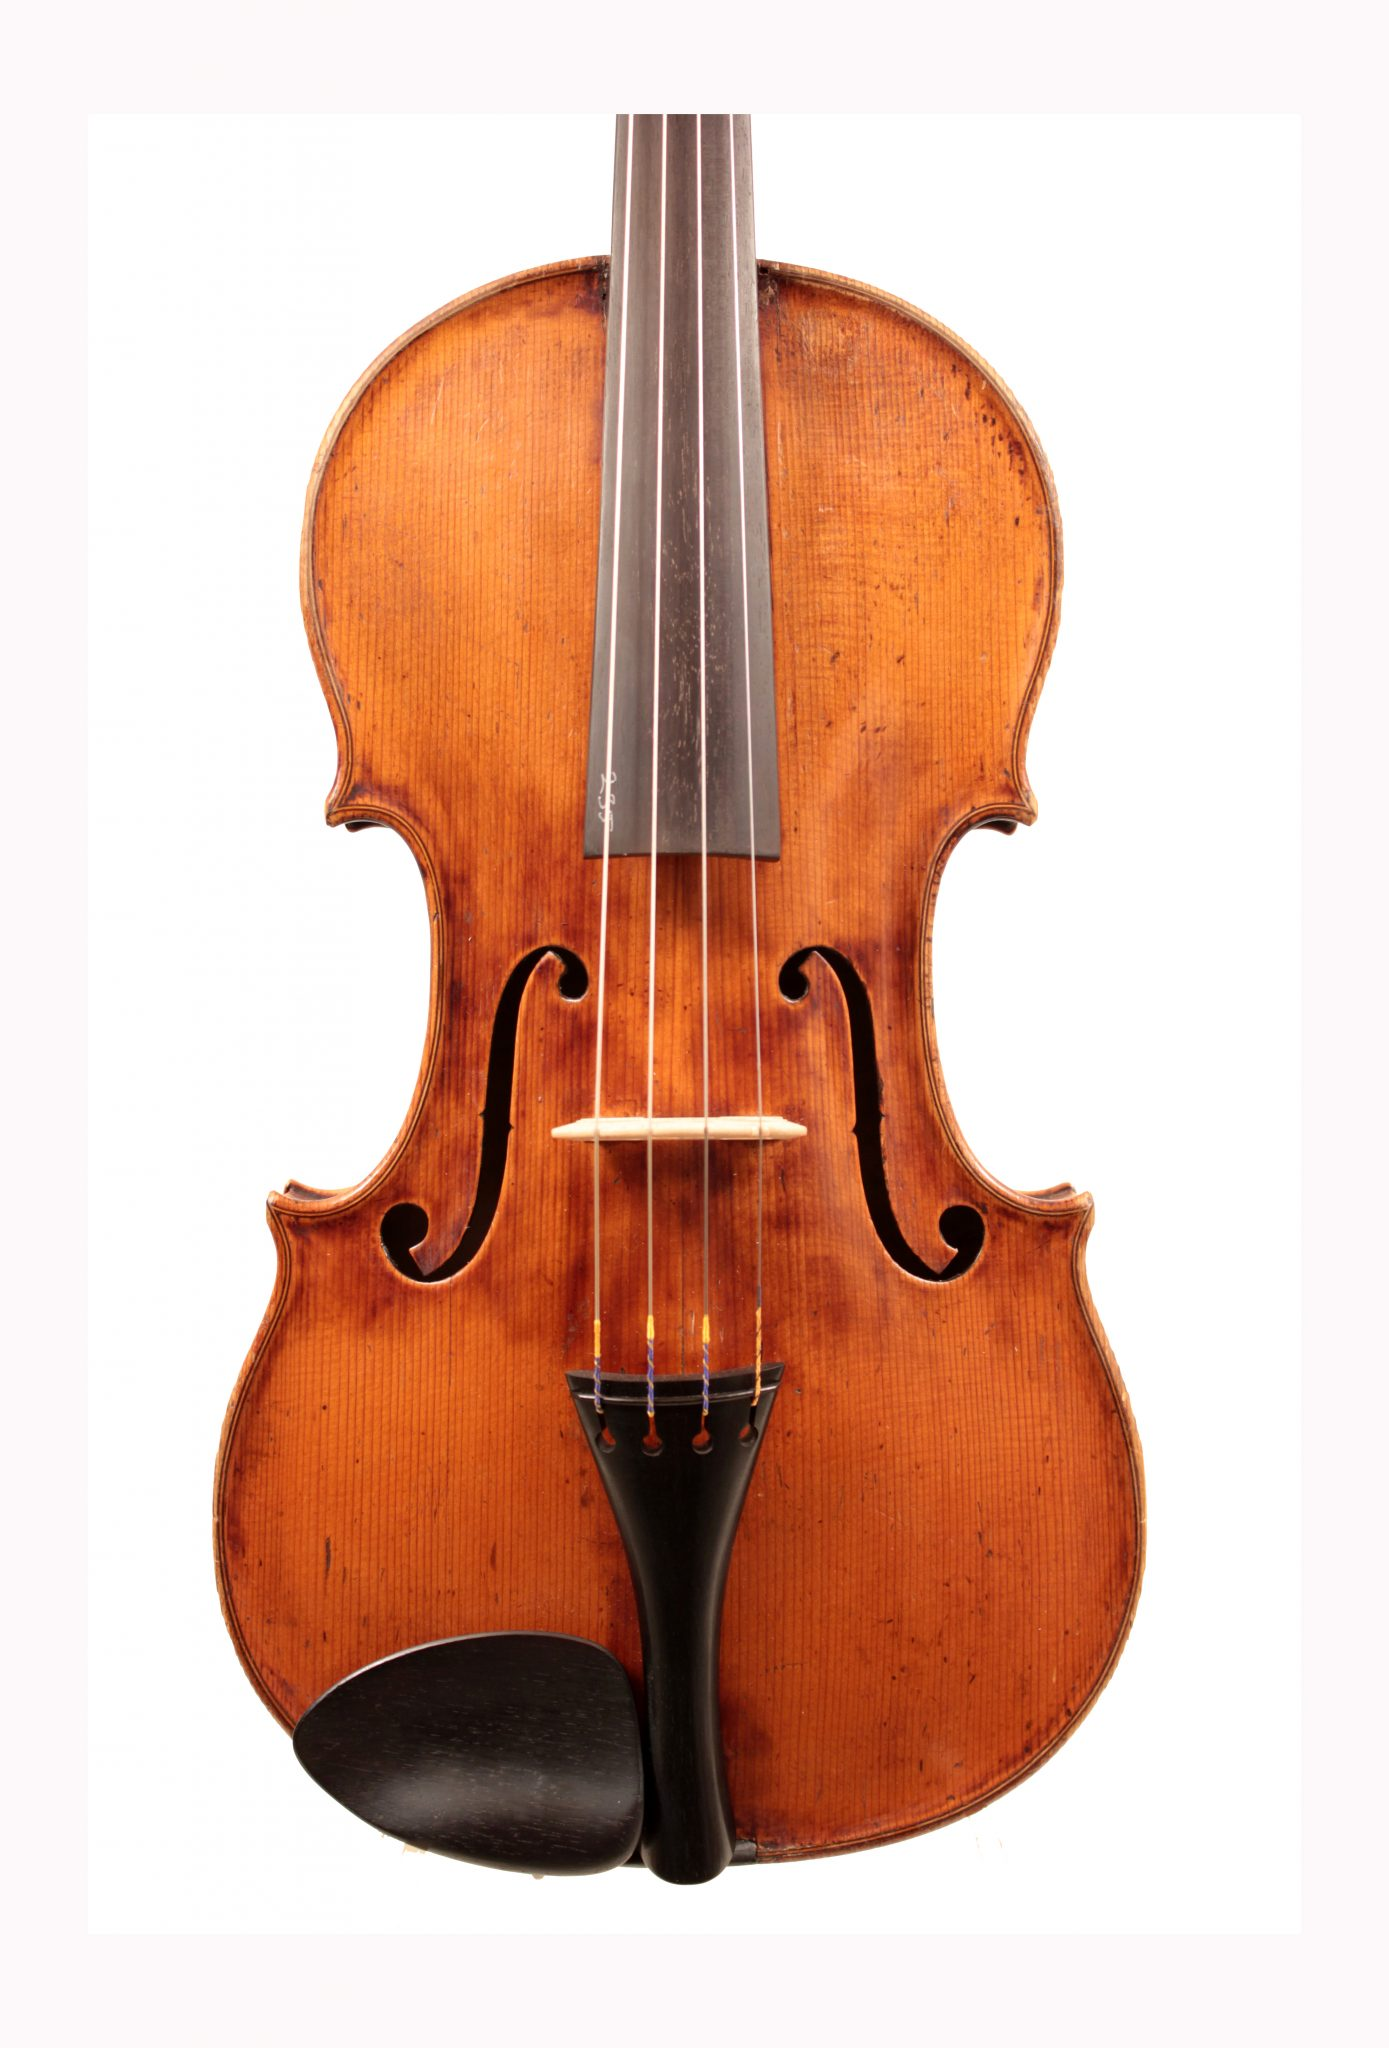 Viola by Barbe Mirecourt c.1820 for sale at Bridgewood and Neitzert London